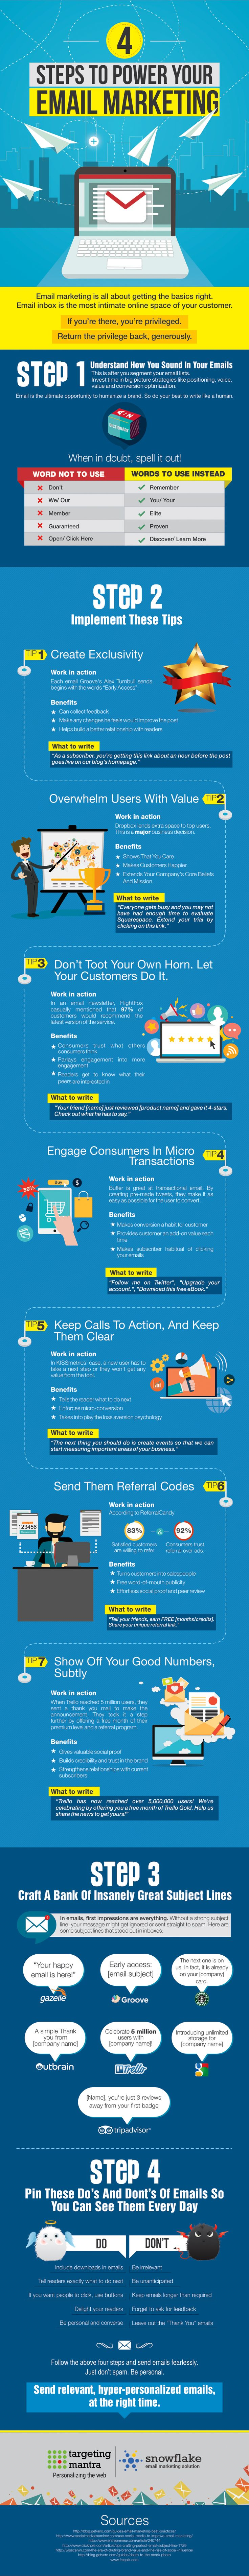 4 Steps To Power Your #EmailMarketing